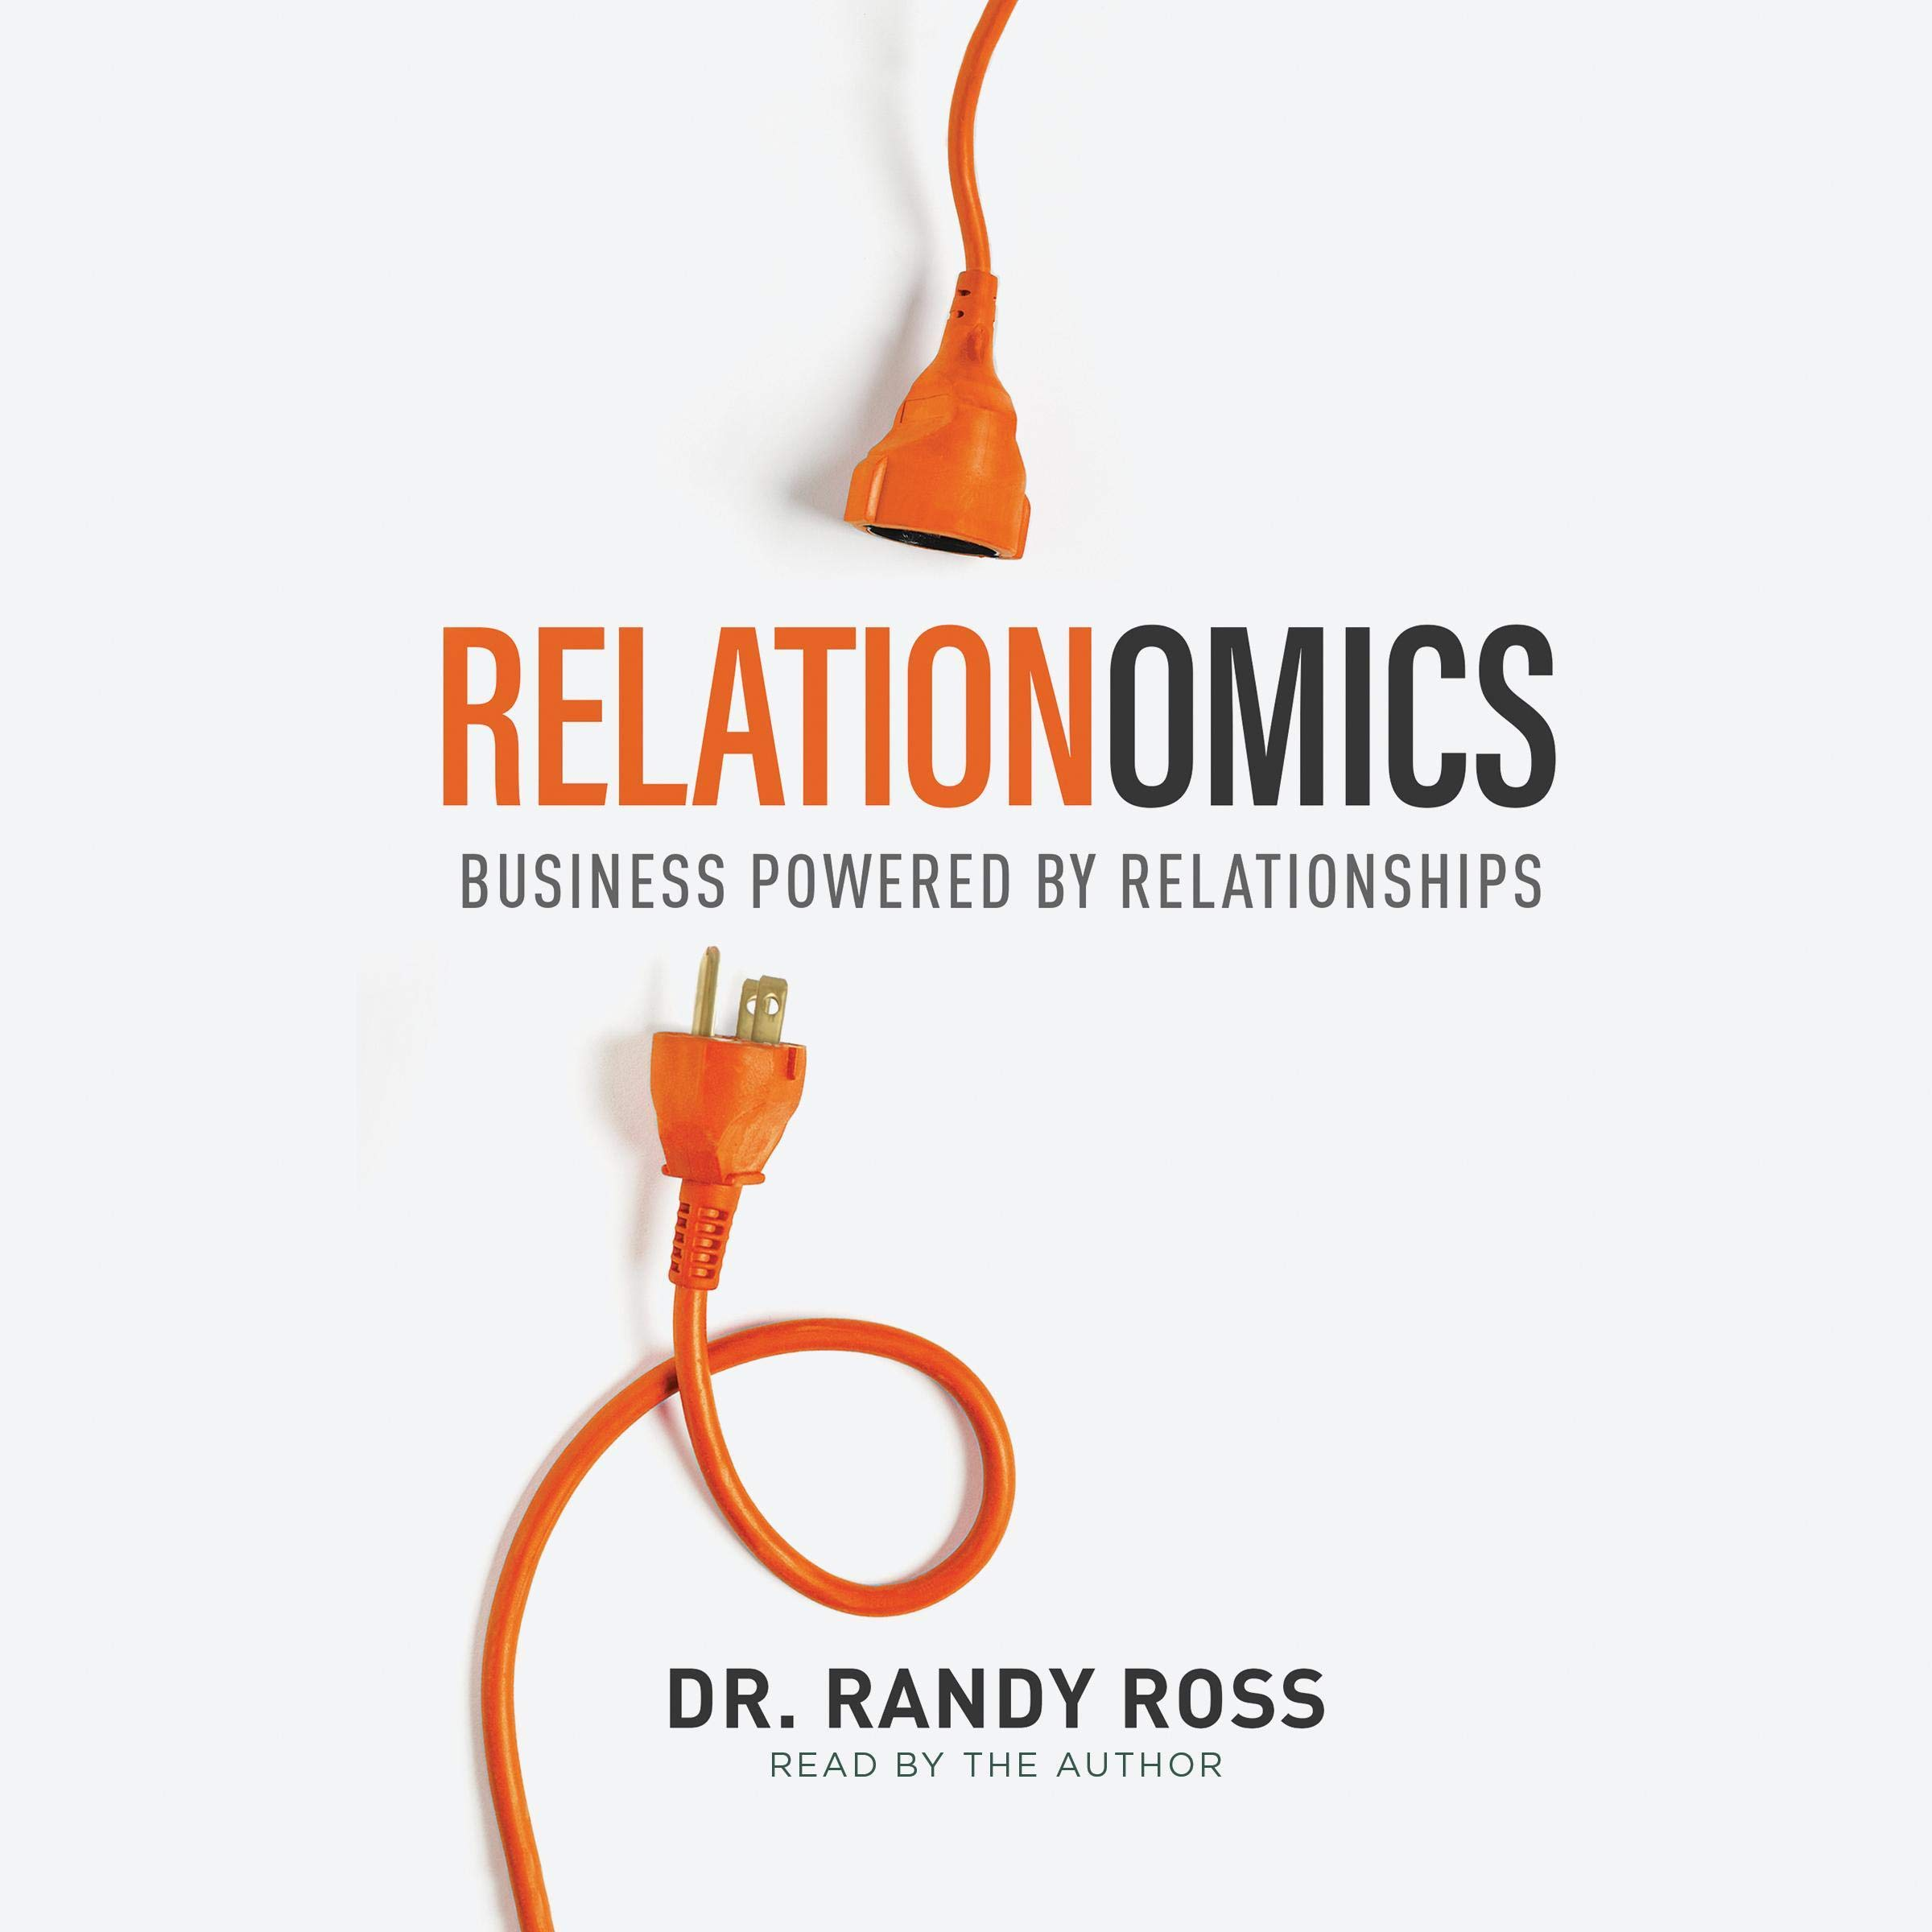 Relationomics: Business Powered by Relationships